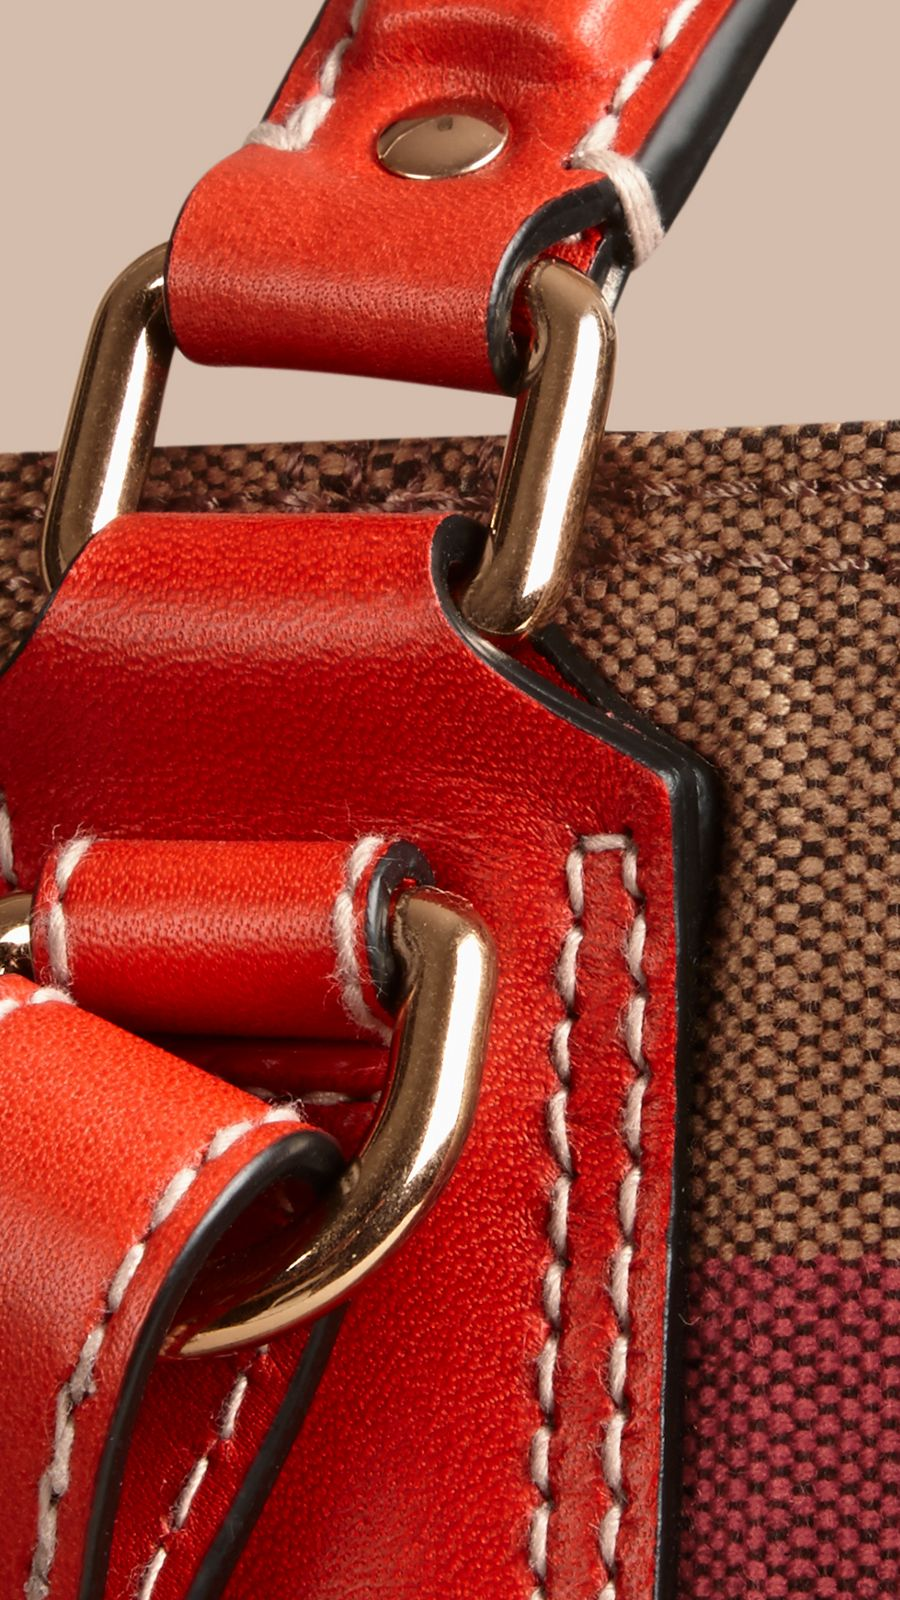 Cadmium red The Medium Ashby in Canvas Check and Leather Cadmium Red - Image 5